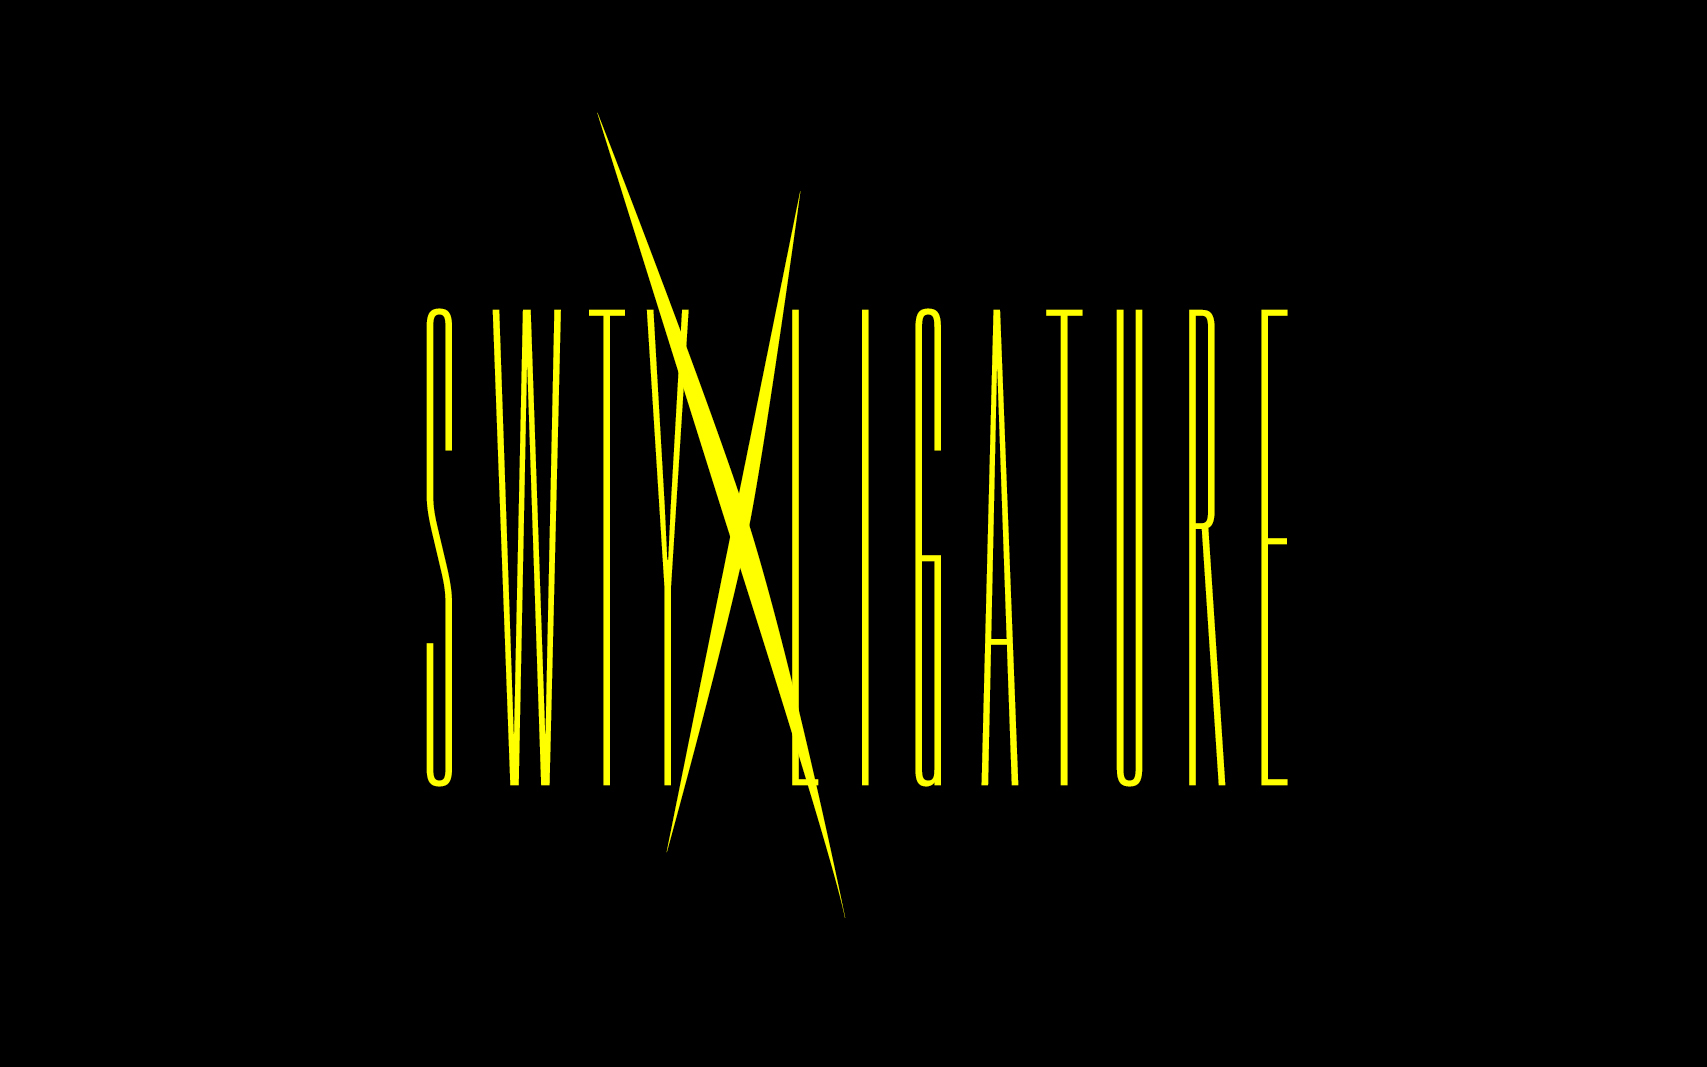 swty x ligature_yellow_2